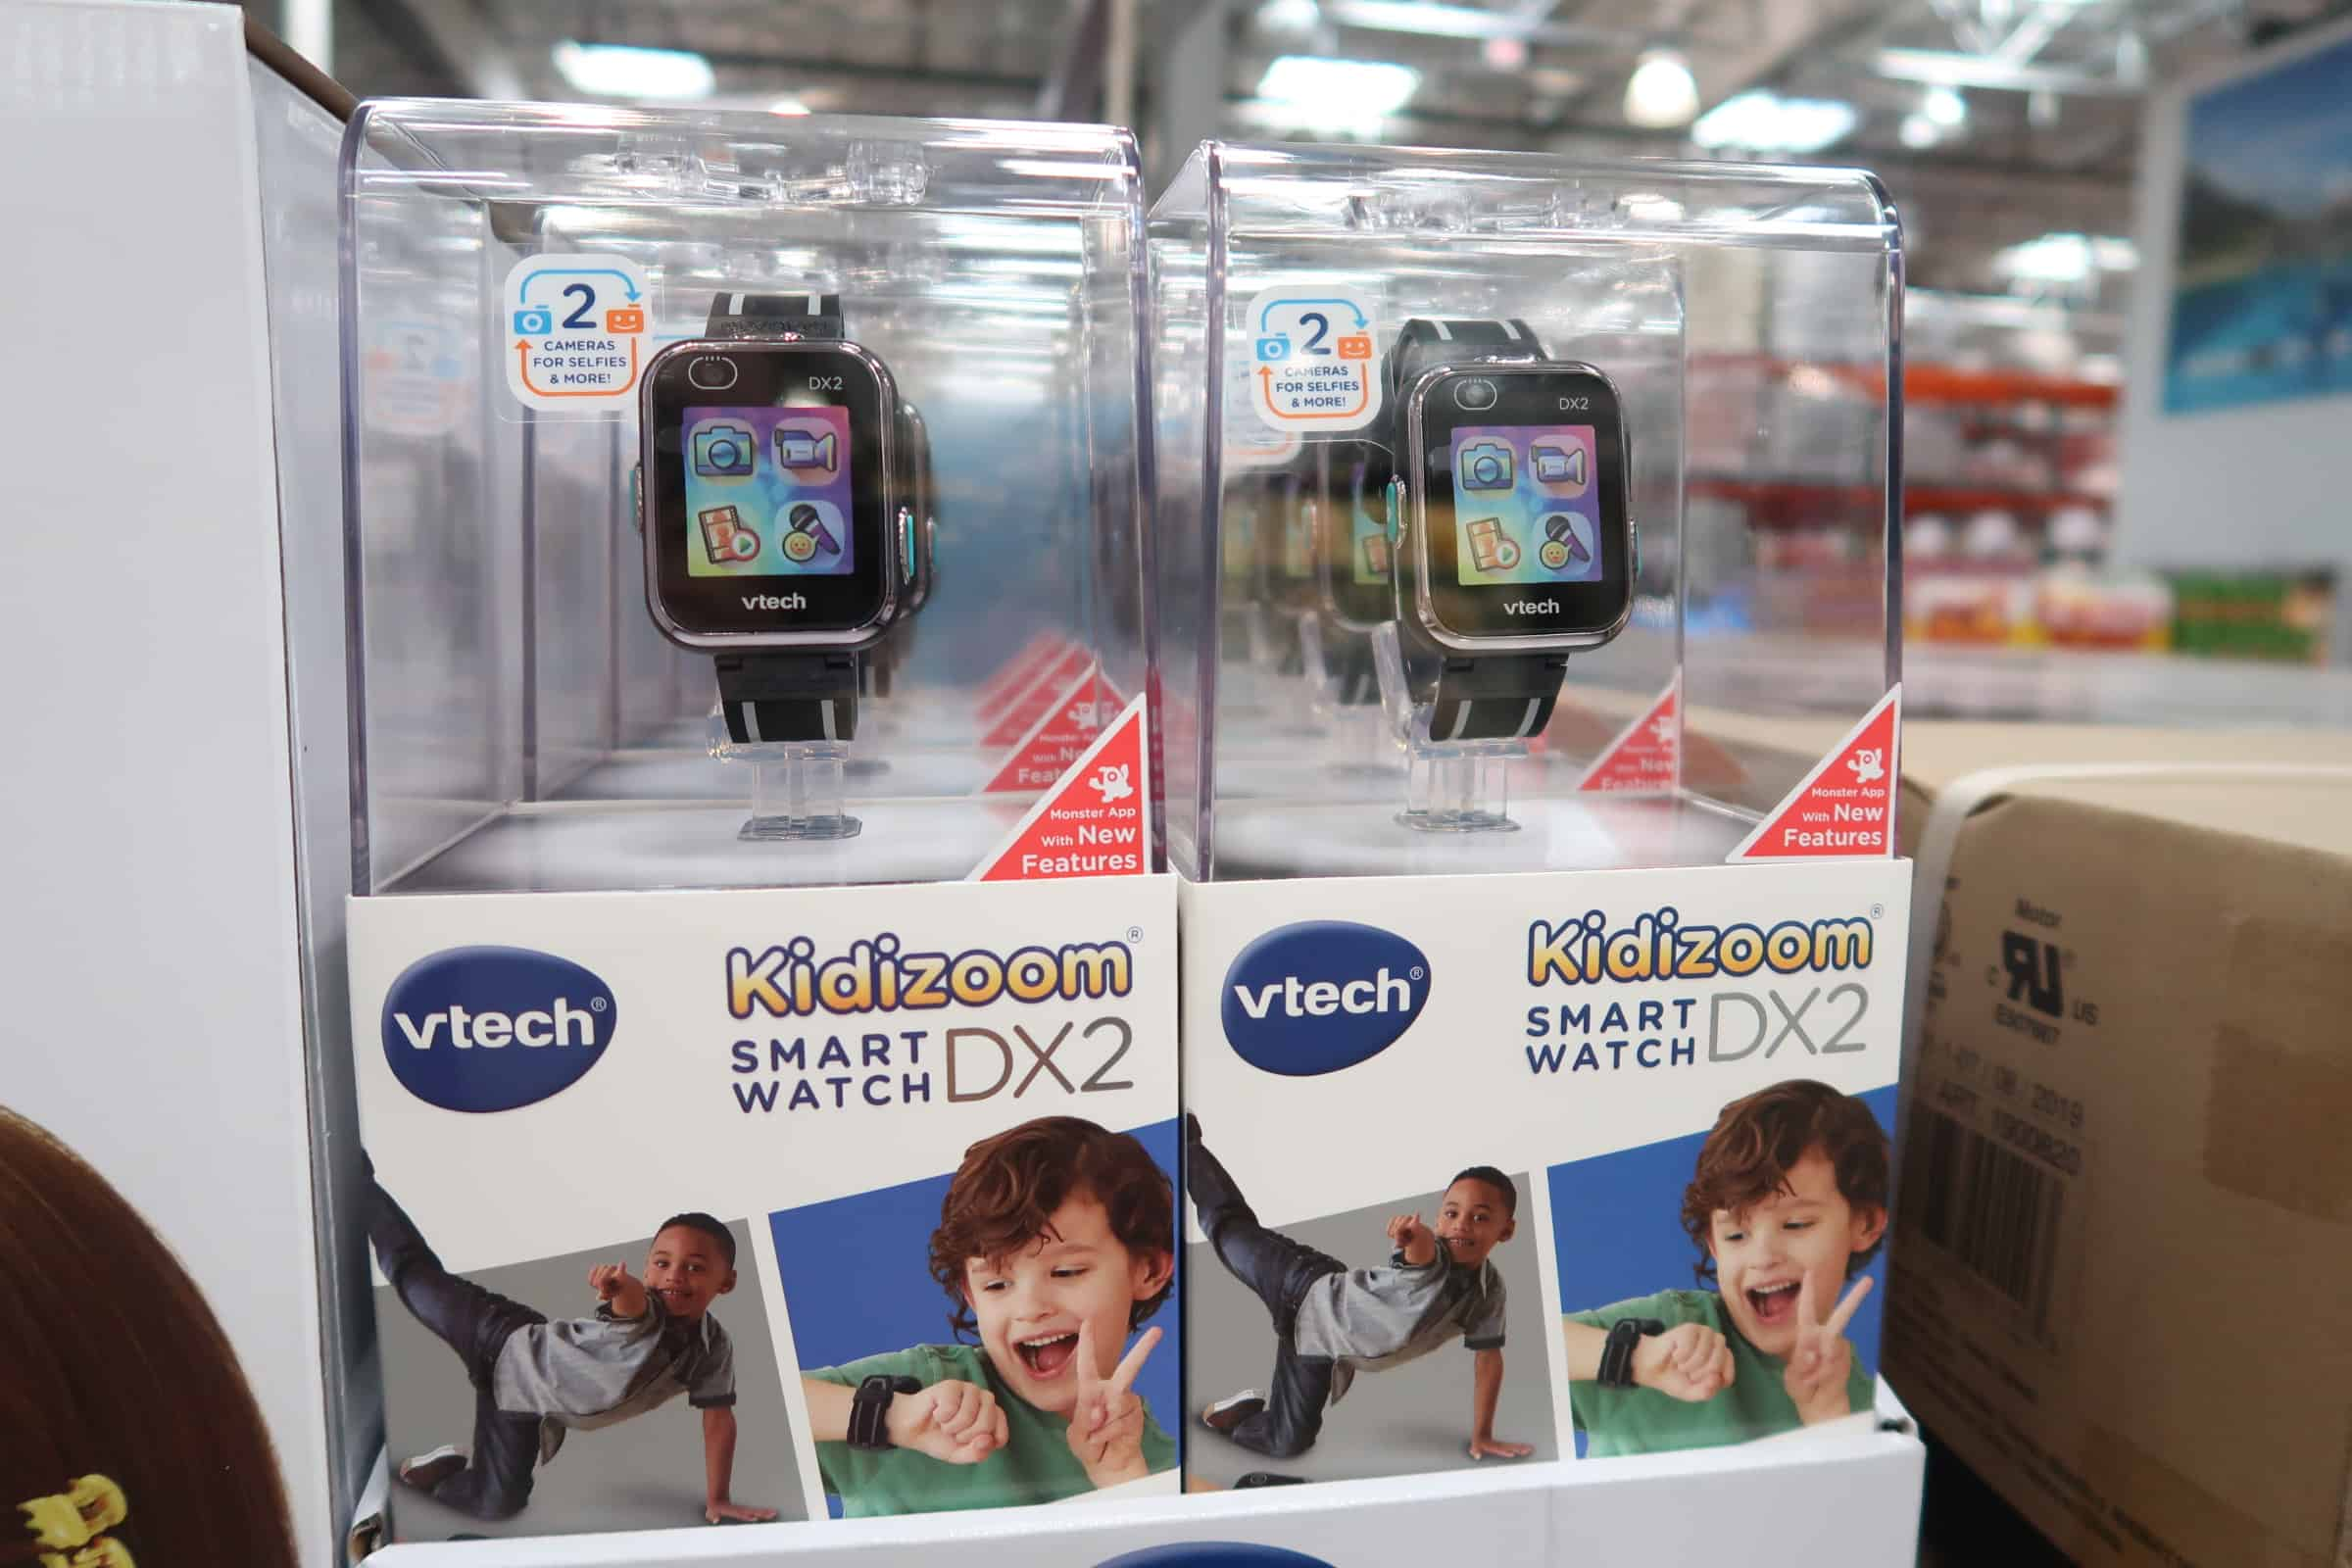 Vtech KidiZoom DX2 Smart Watch $39.99